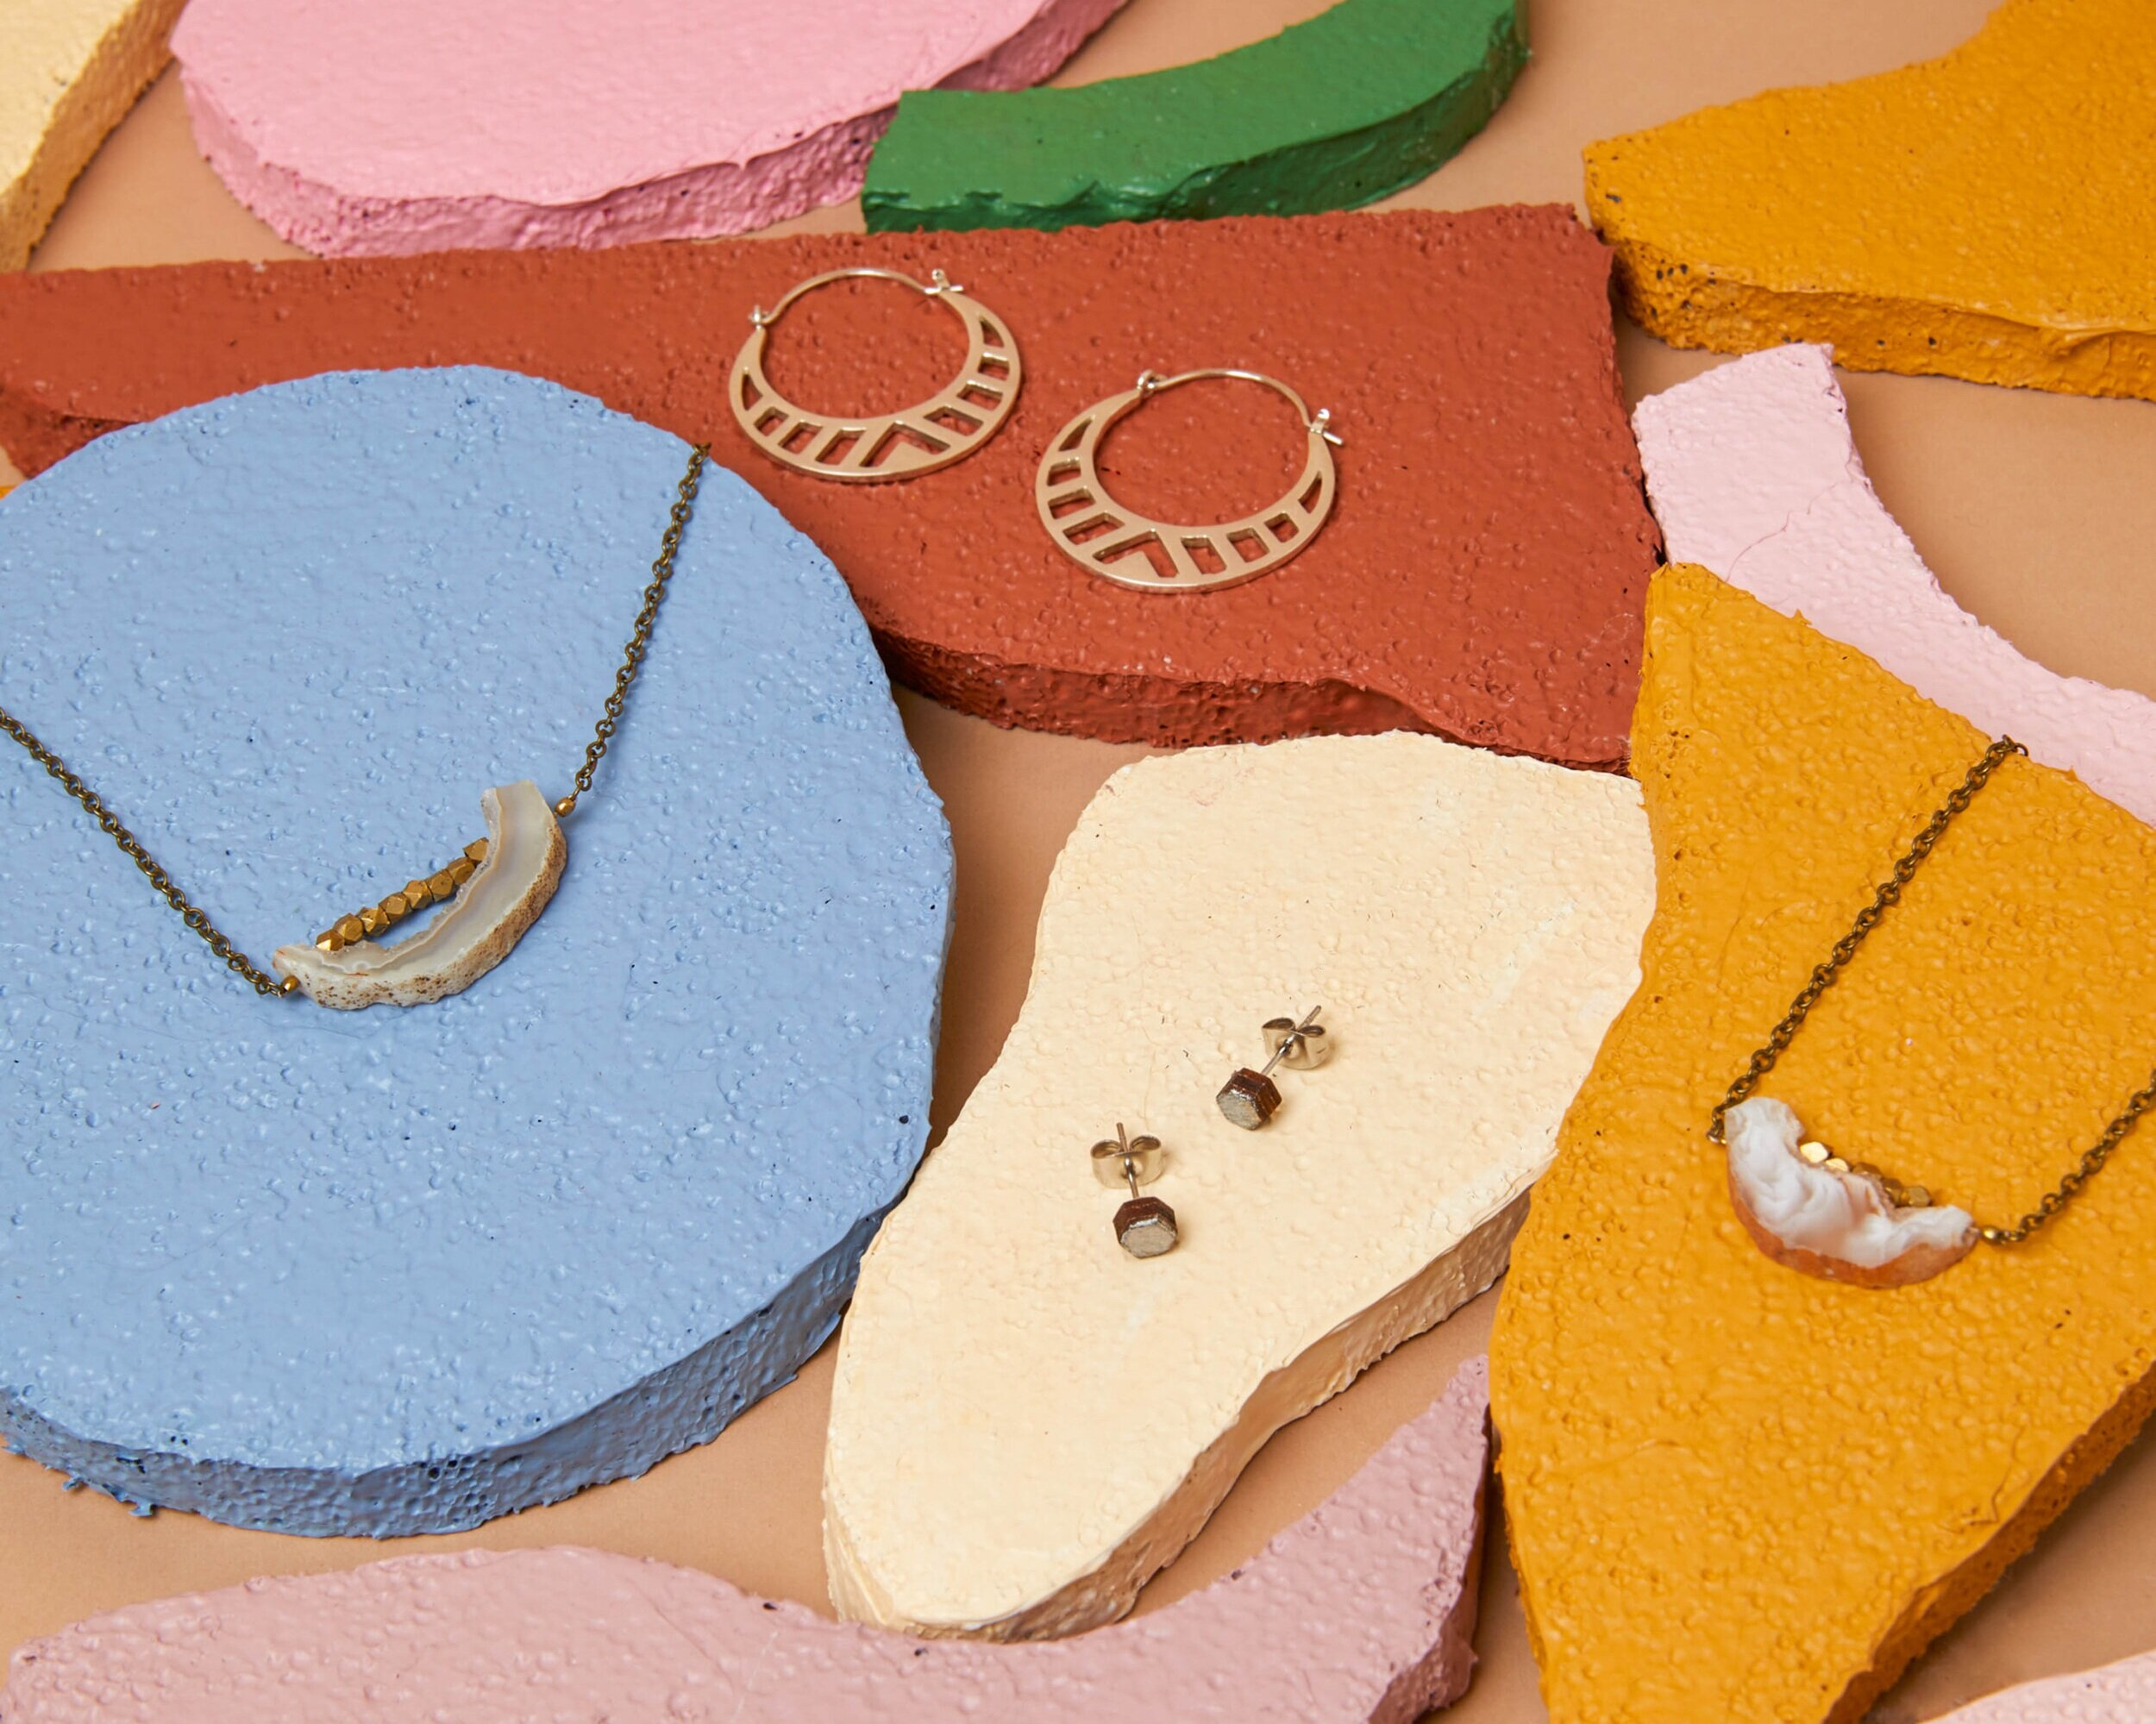 A selection of jewelry from Handheld Handmade.